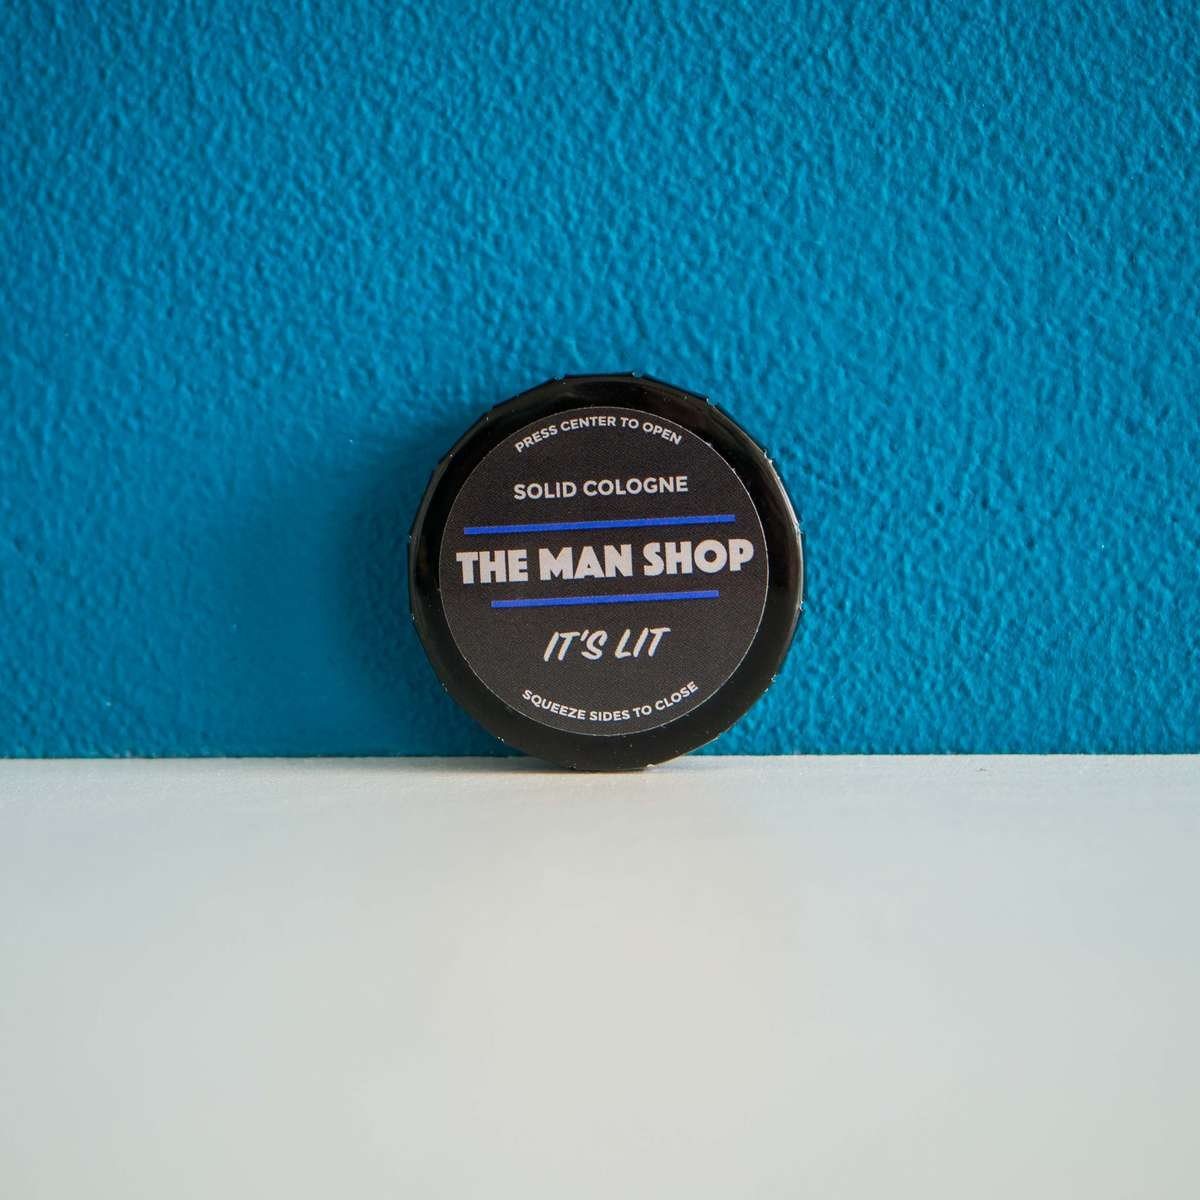 THE MAN SHOP MEN'S COLOGNE